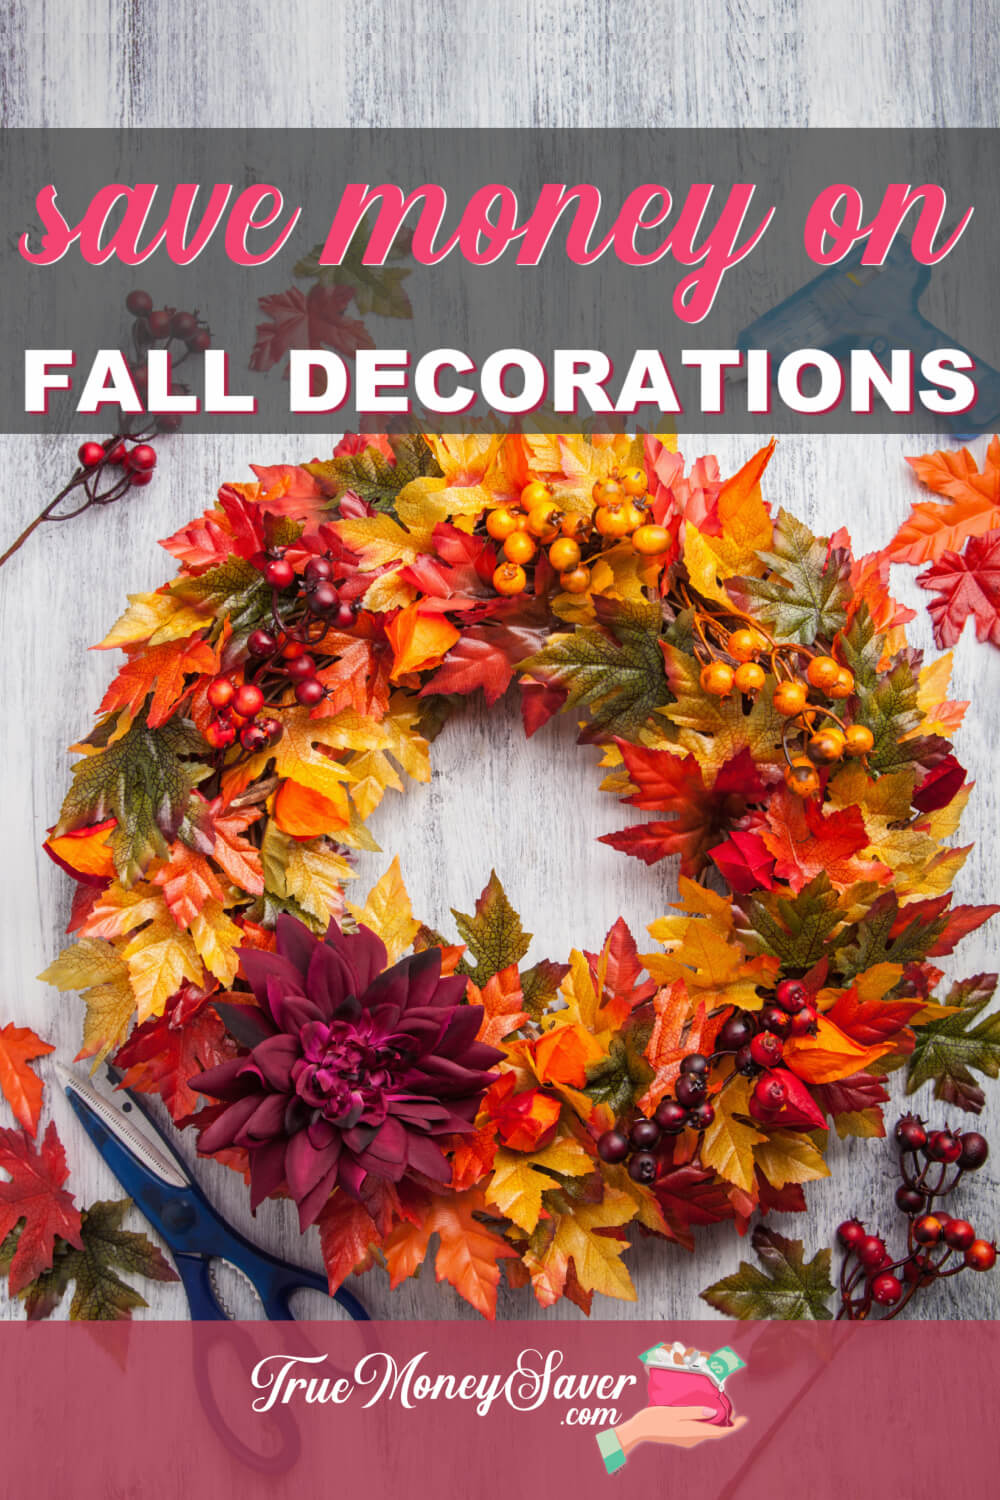 How To Save Money On Fall Decor This Year